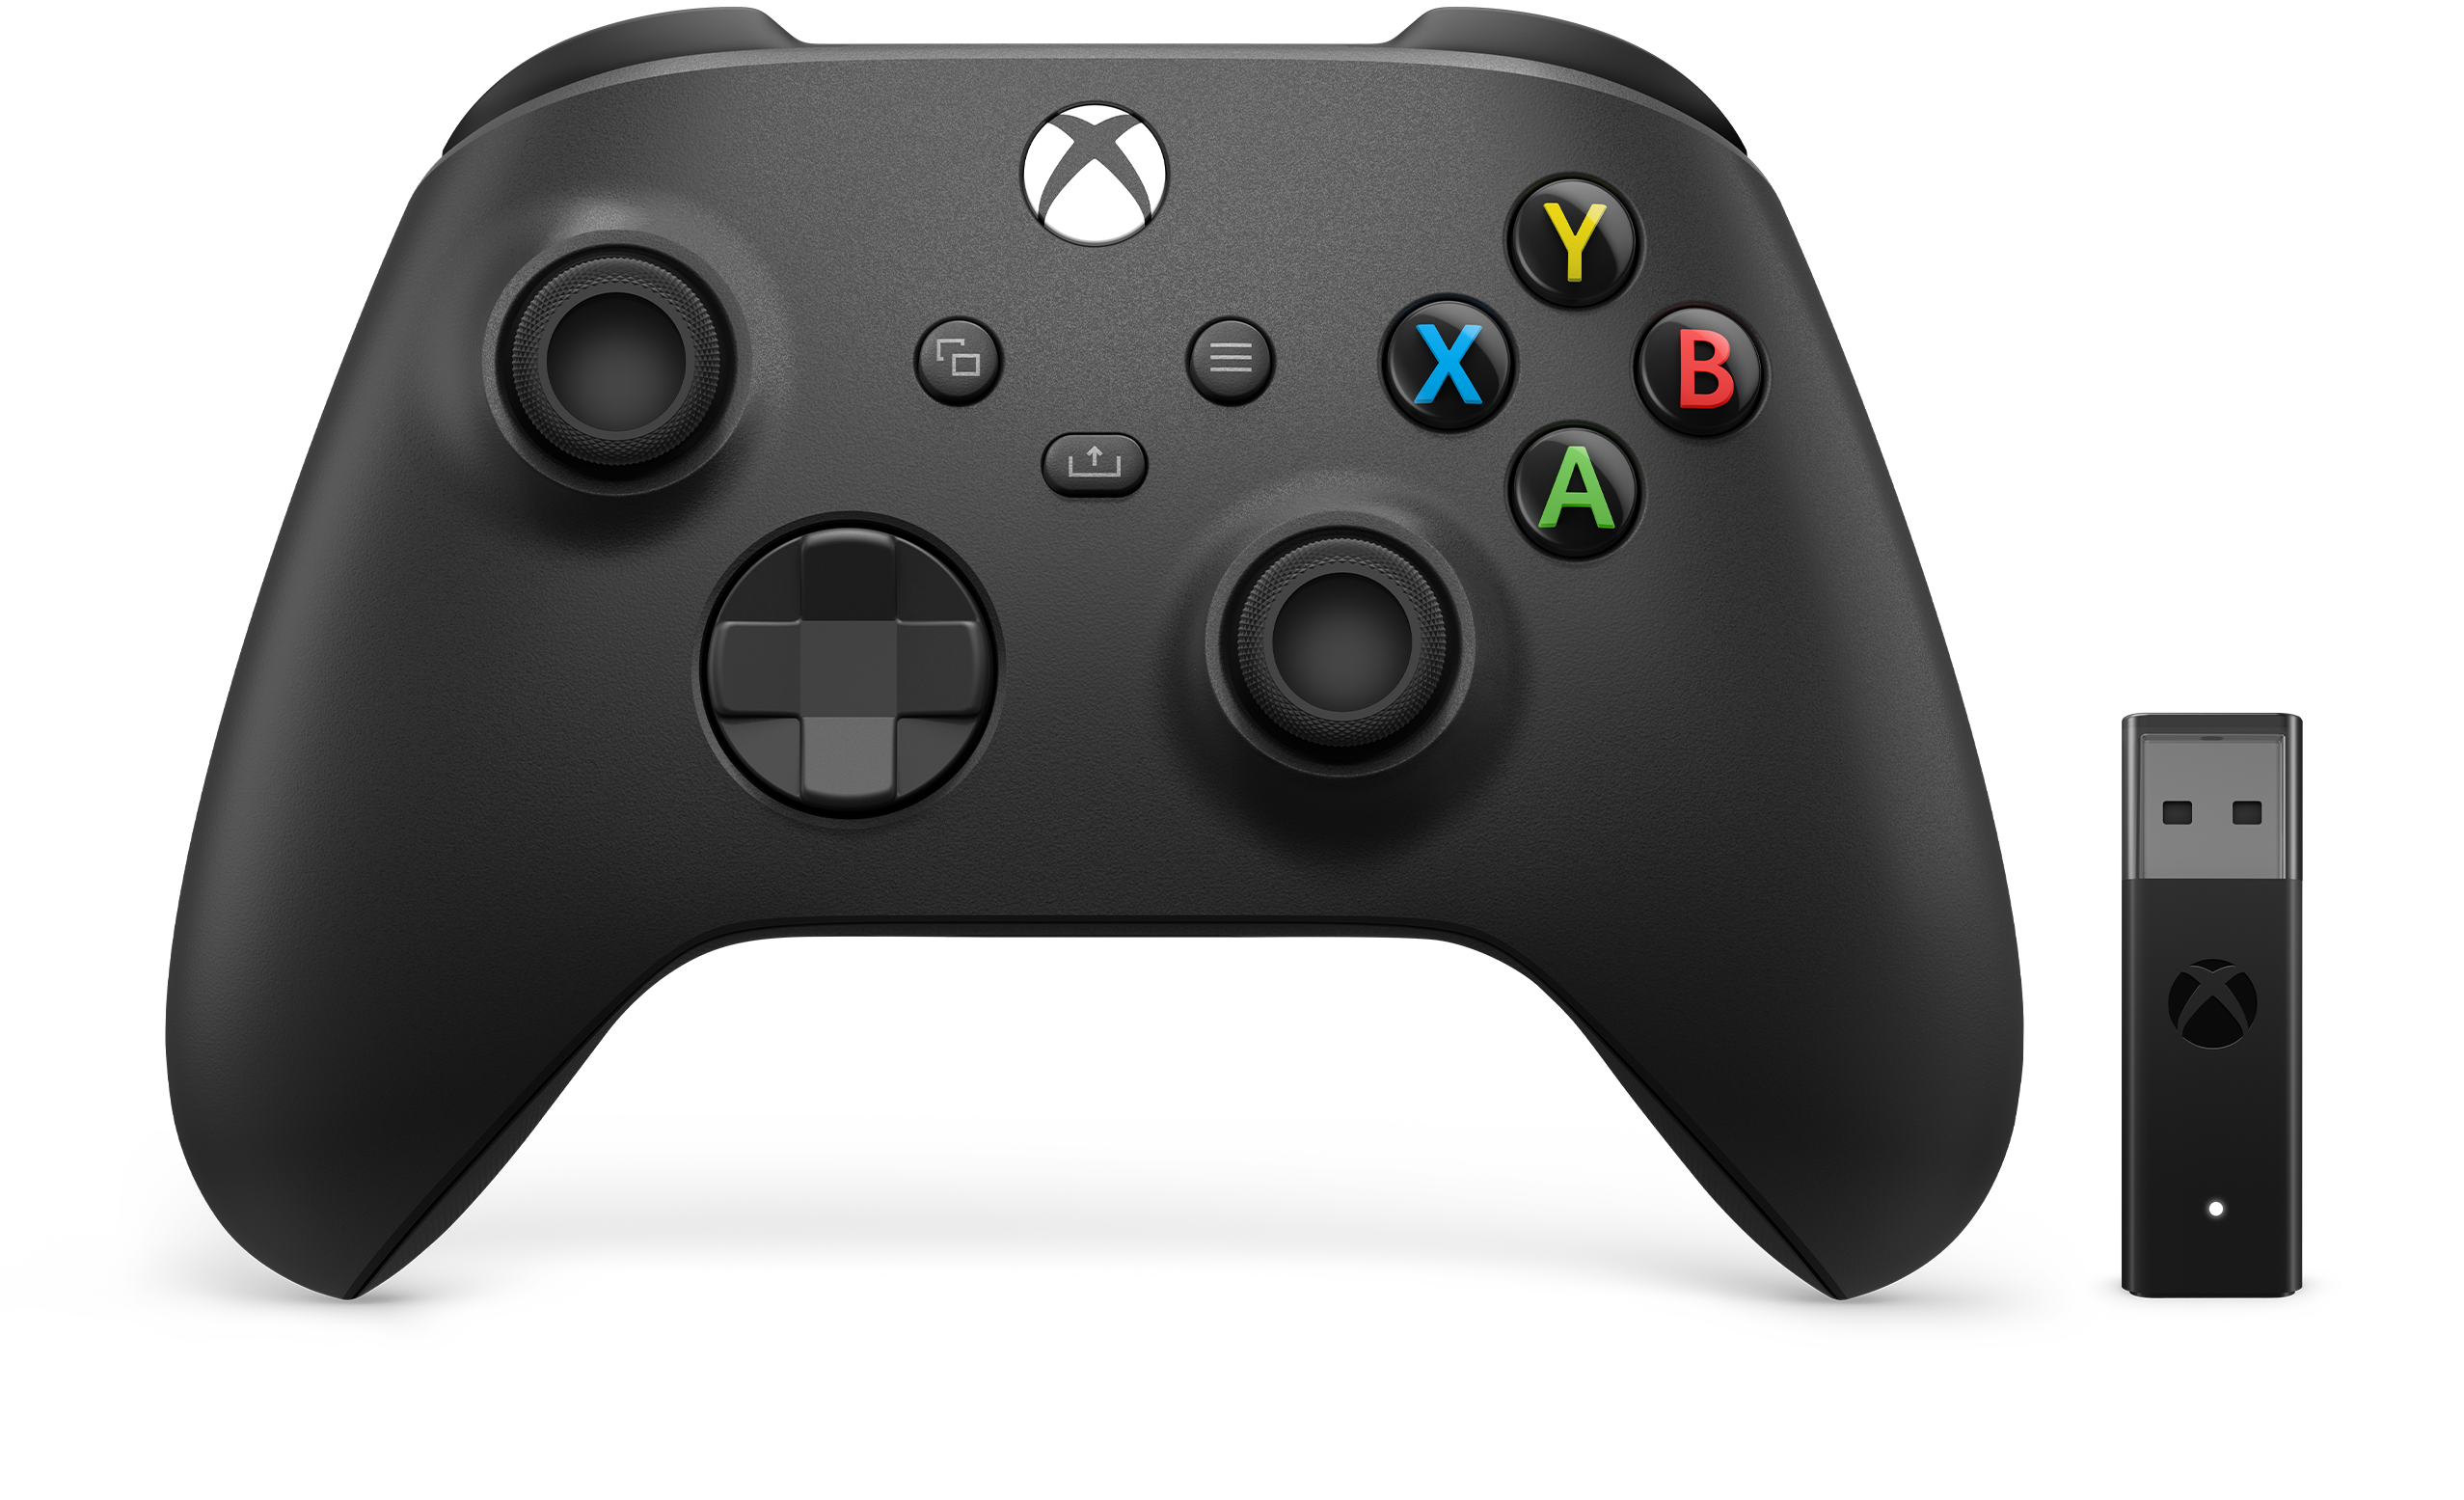 Xbox Wireless Controller + Wireless Adaptor for Windows 10 Xbox Wireless Controller, designed for enhanced comfort during gameplay for PCs, supported consoles, and mobile phones or tablets. Use the included Xbox Wireless Adaptor to play wirelessly on PC*